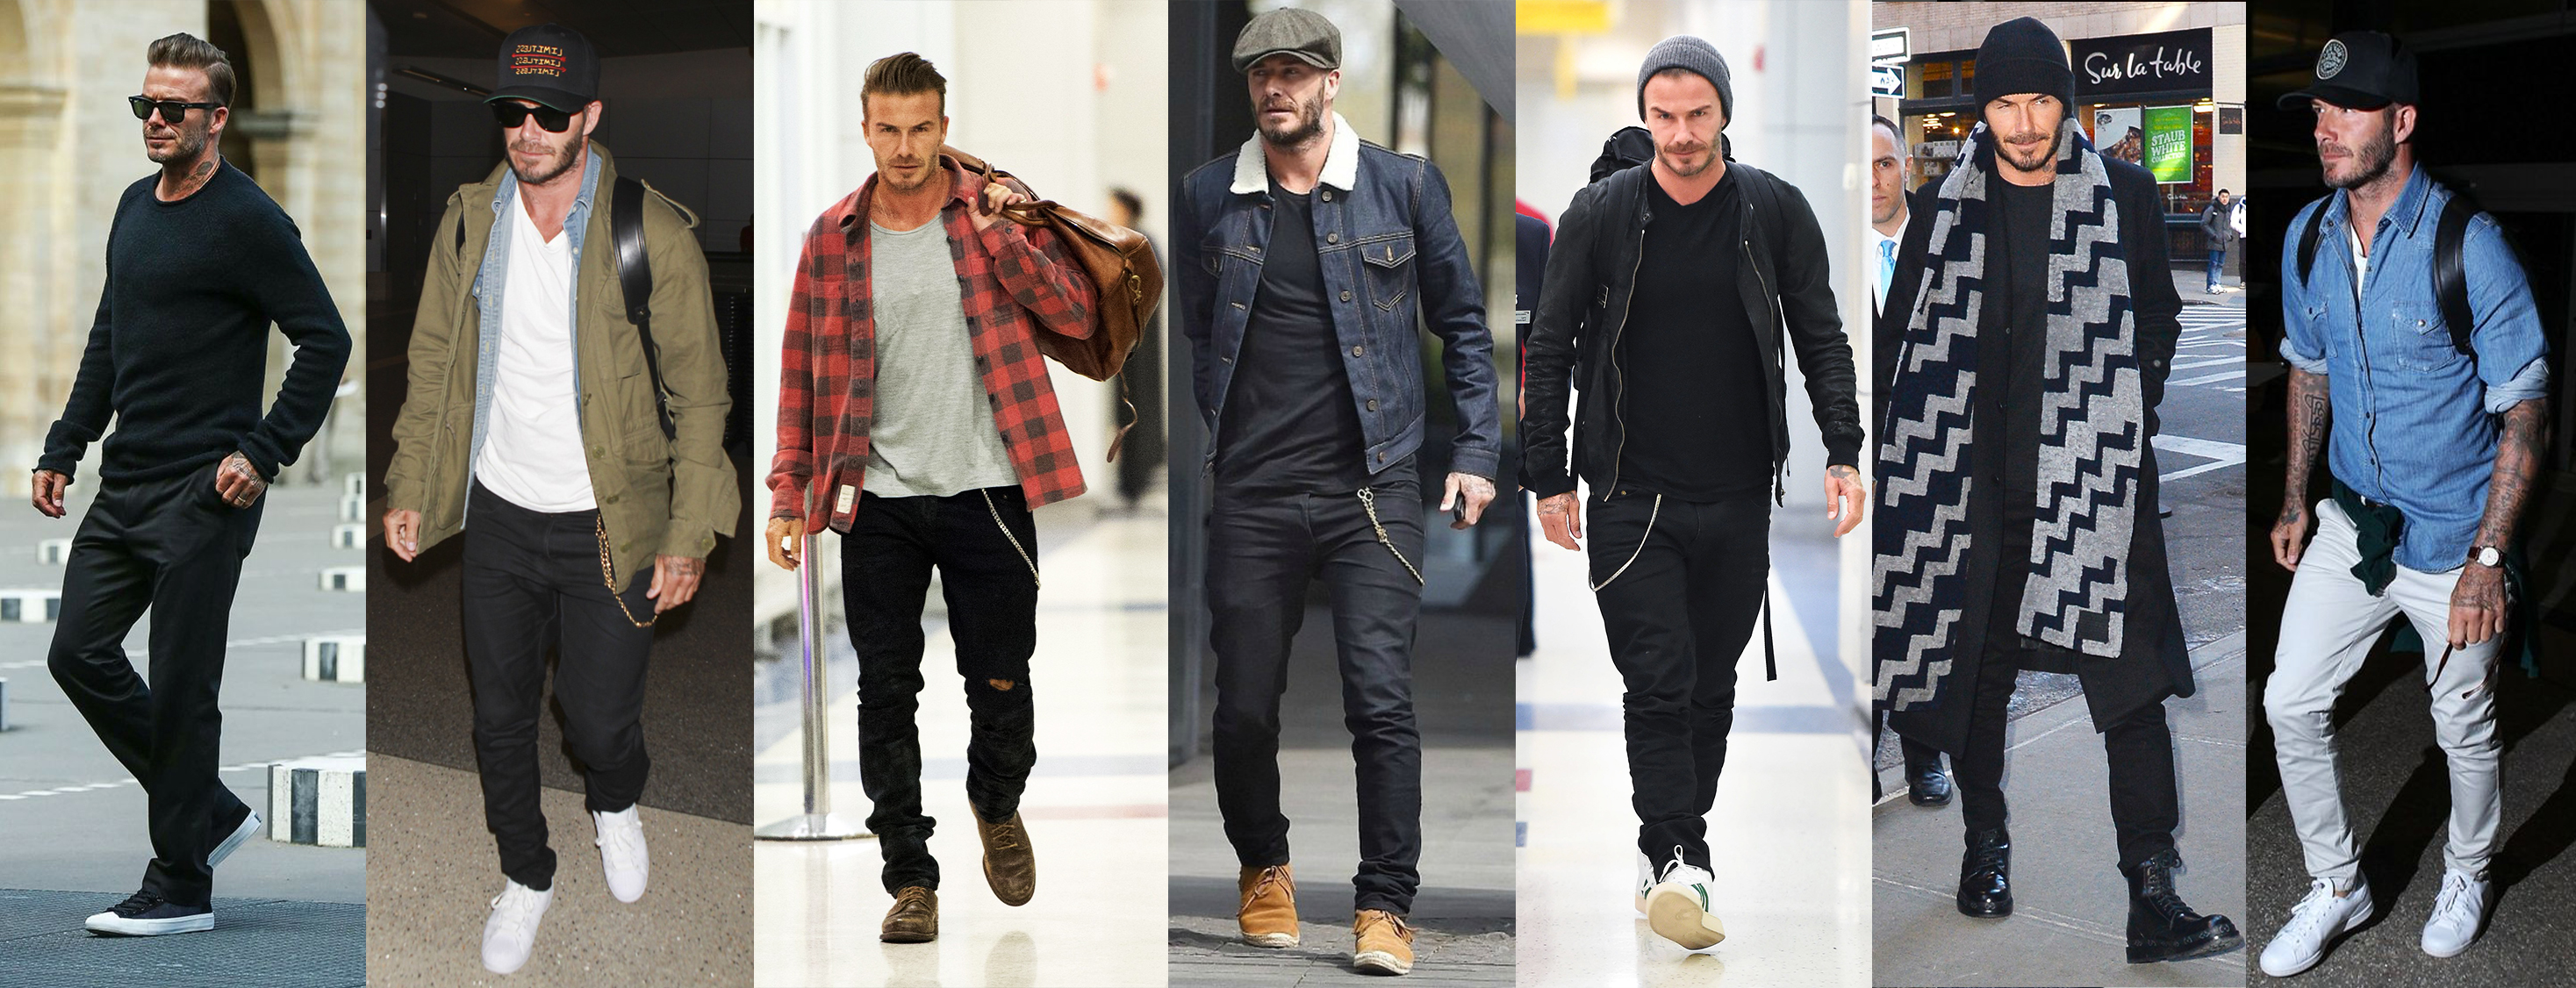 10_top_style_men_david_beckham